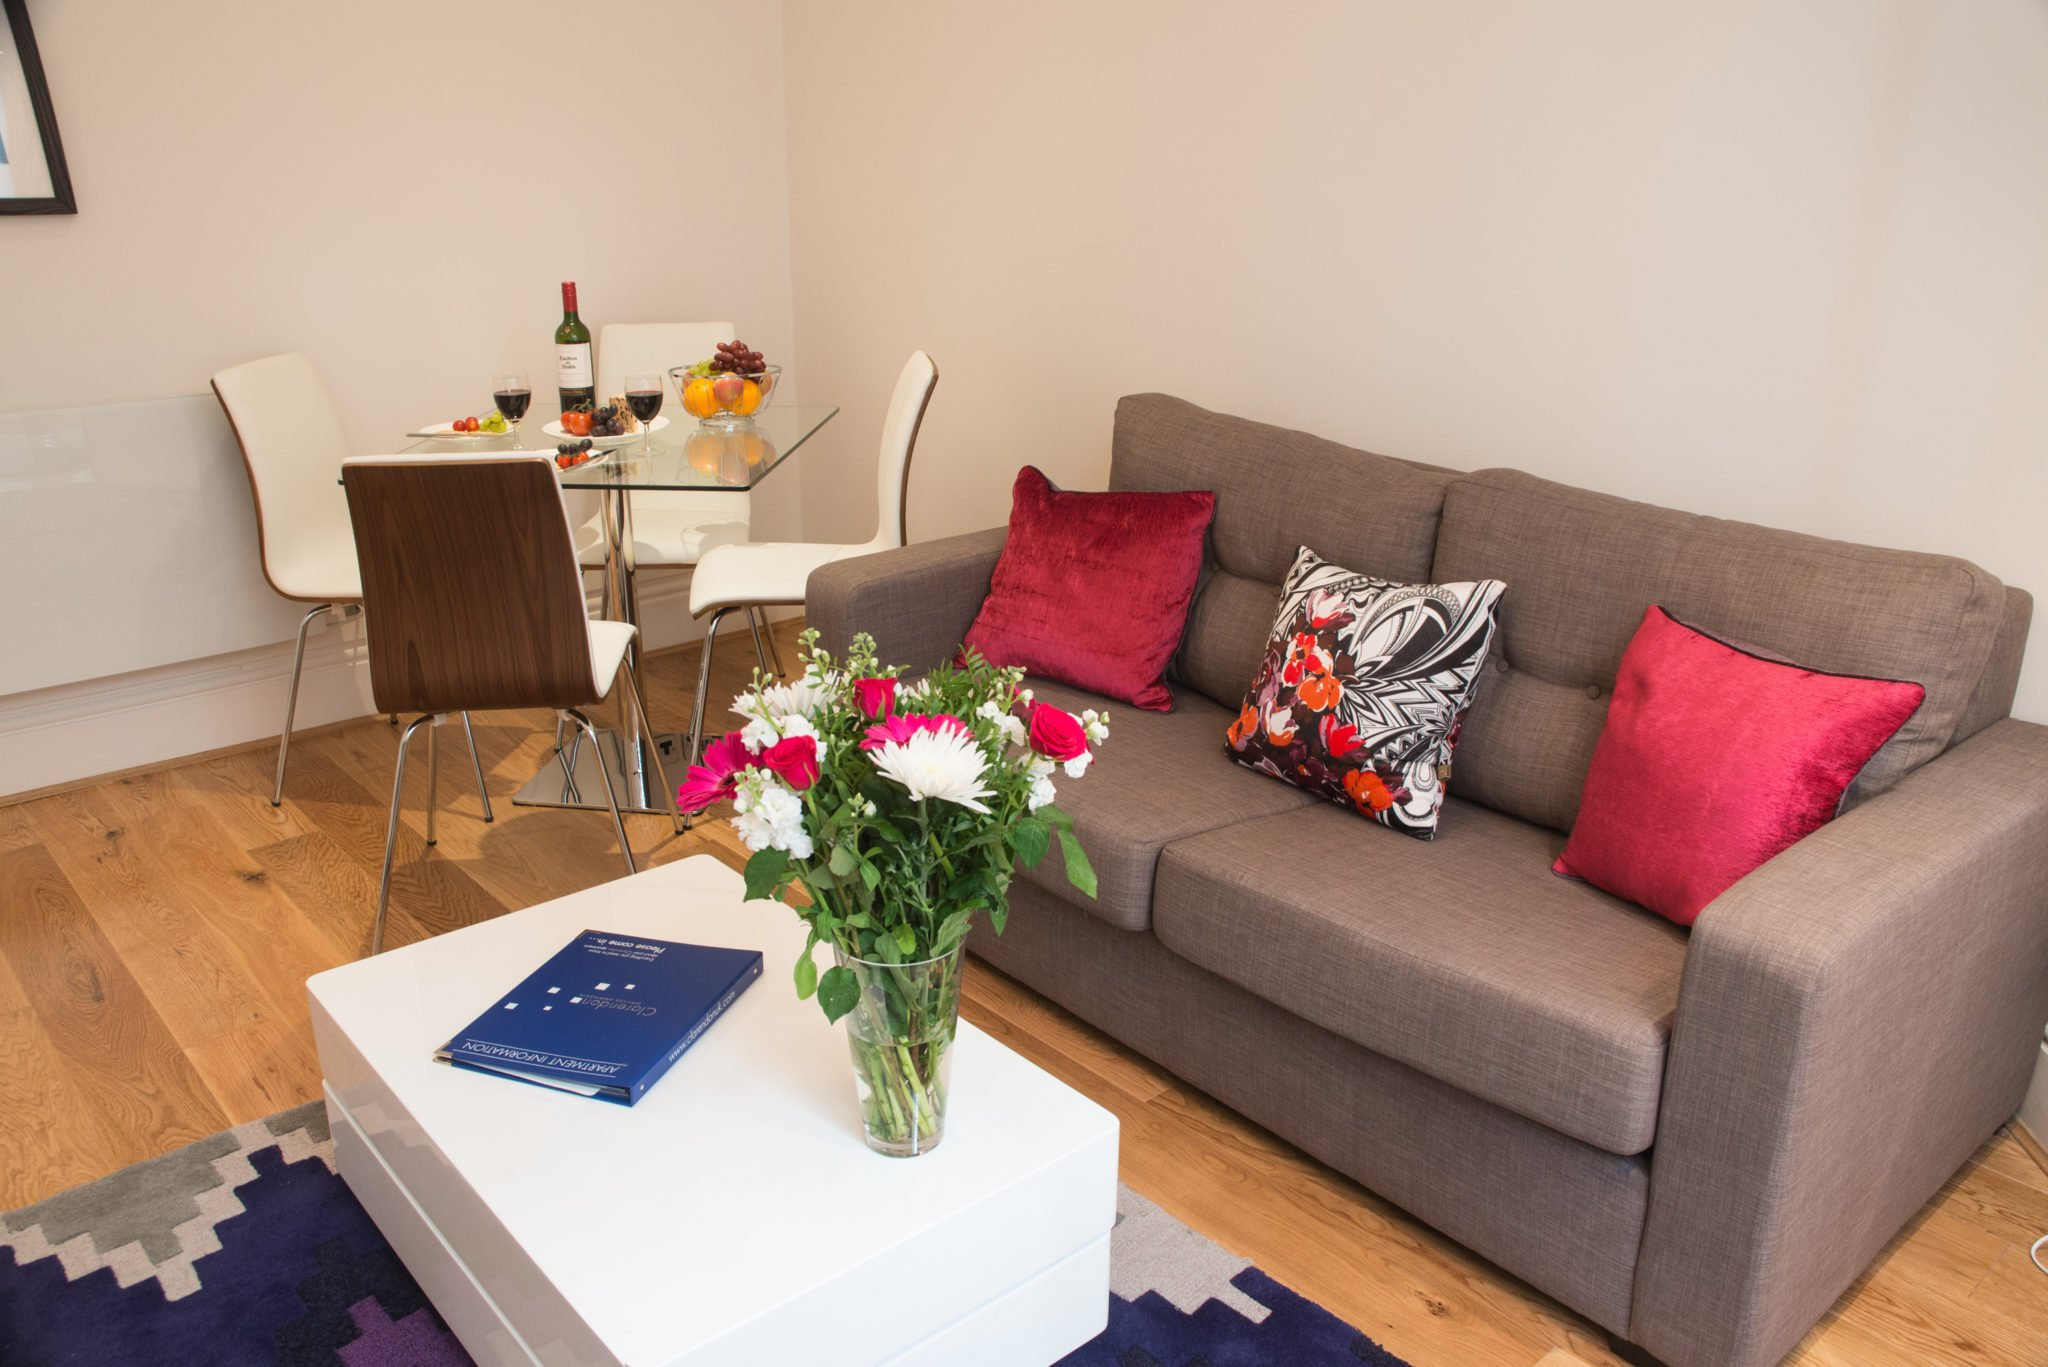 Serviced-Apartment-Charring-Cross-available-now!-Book-cheap-Short-Let-Apartments-in-London-near-Leicester-Square-with-Lift-and-Fully-equipped-kitchen!